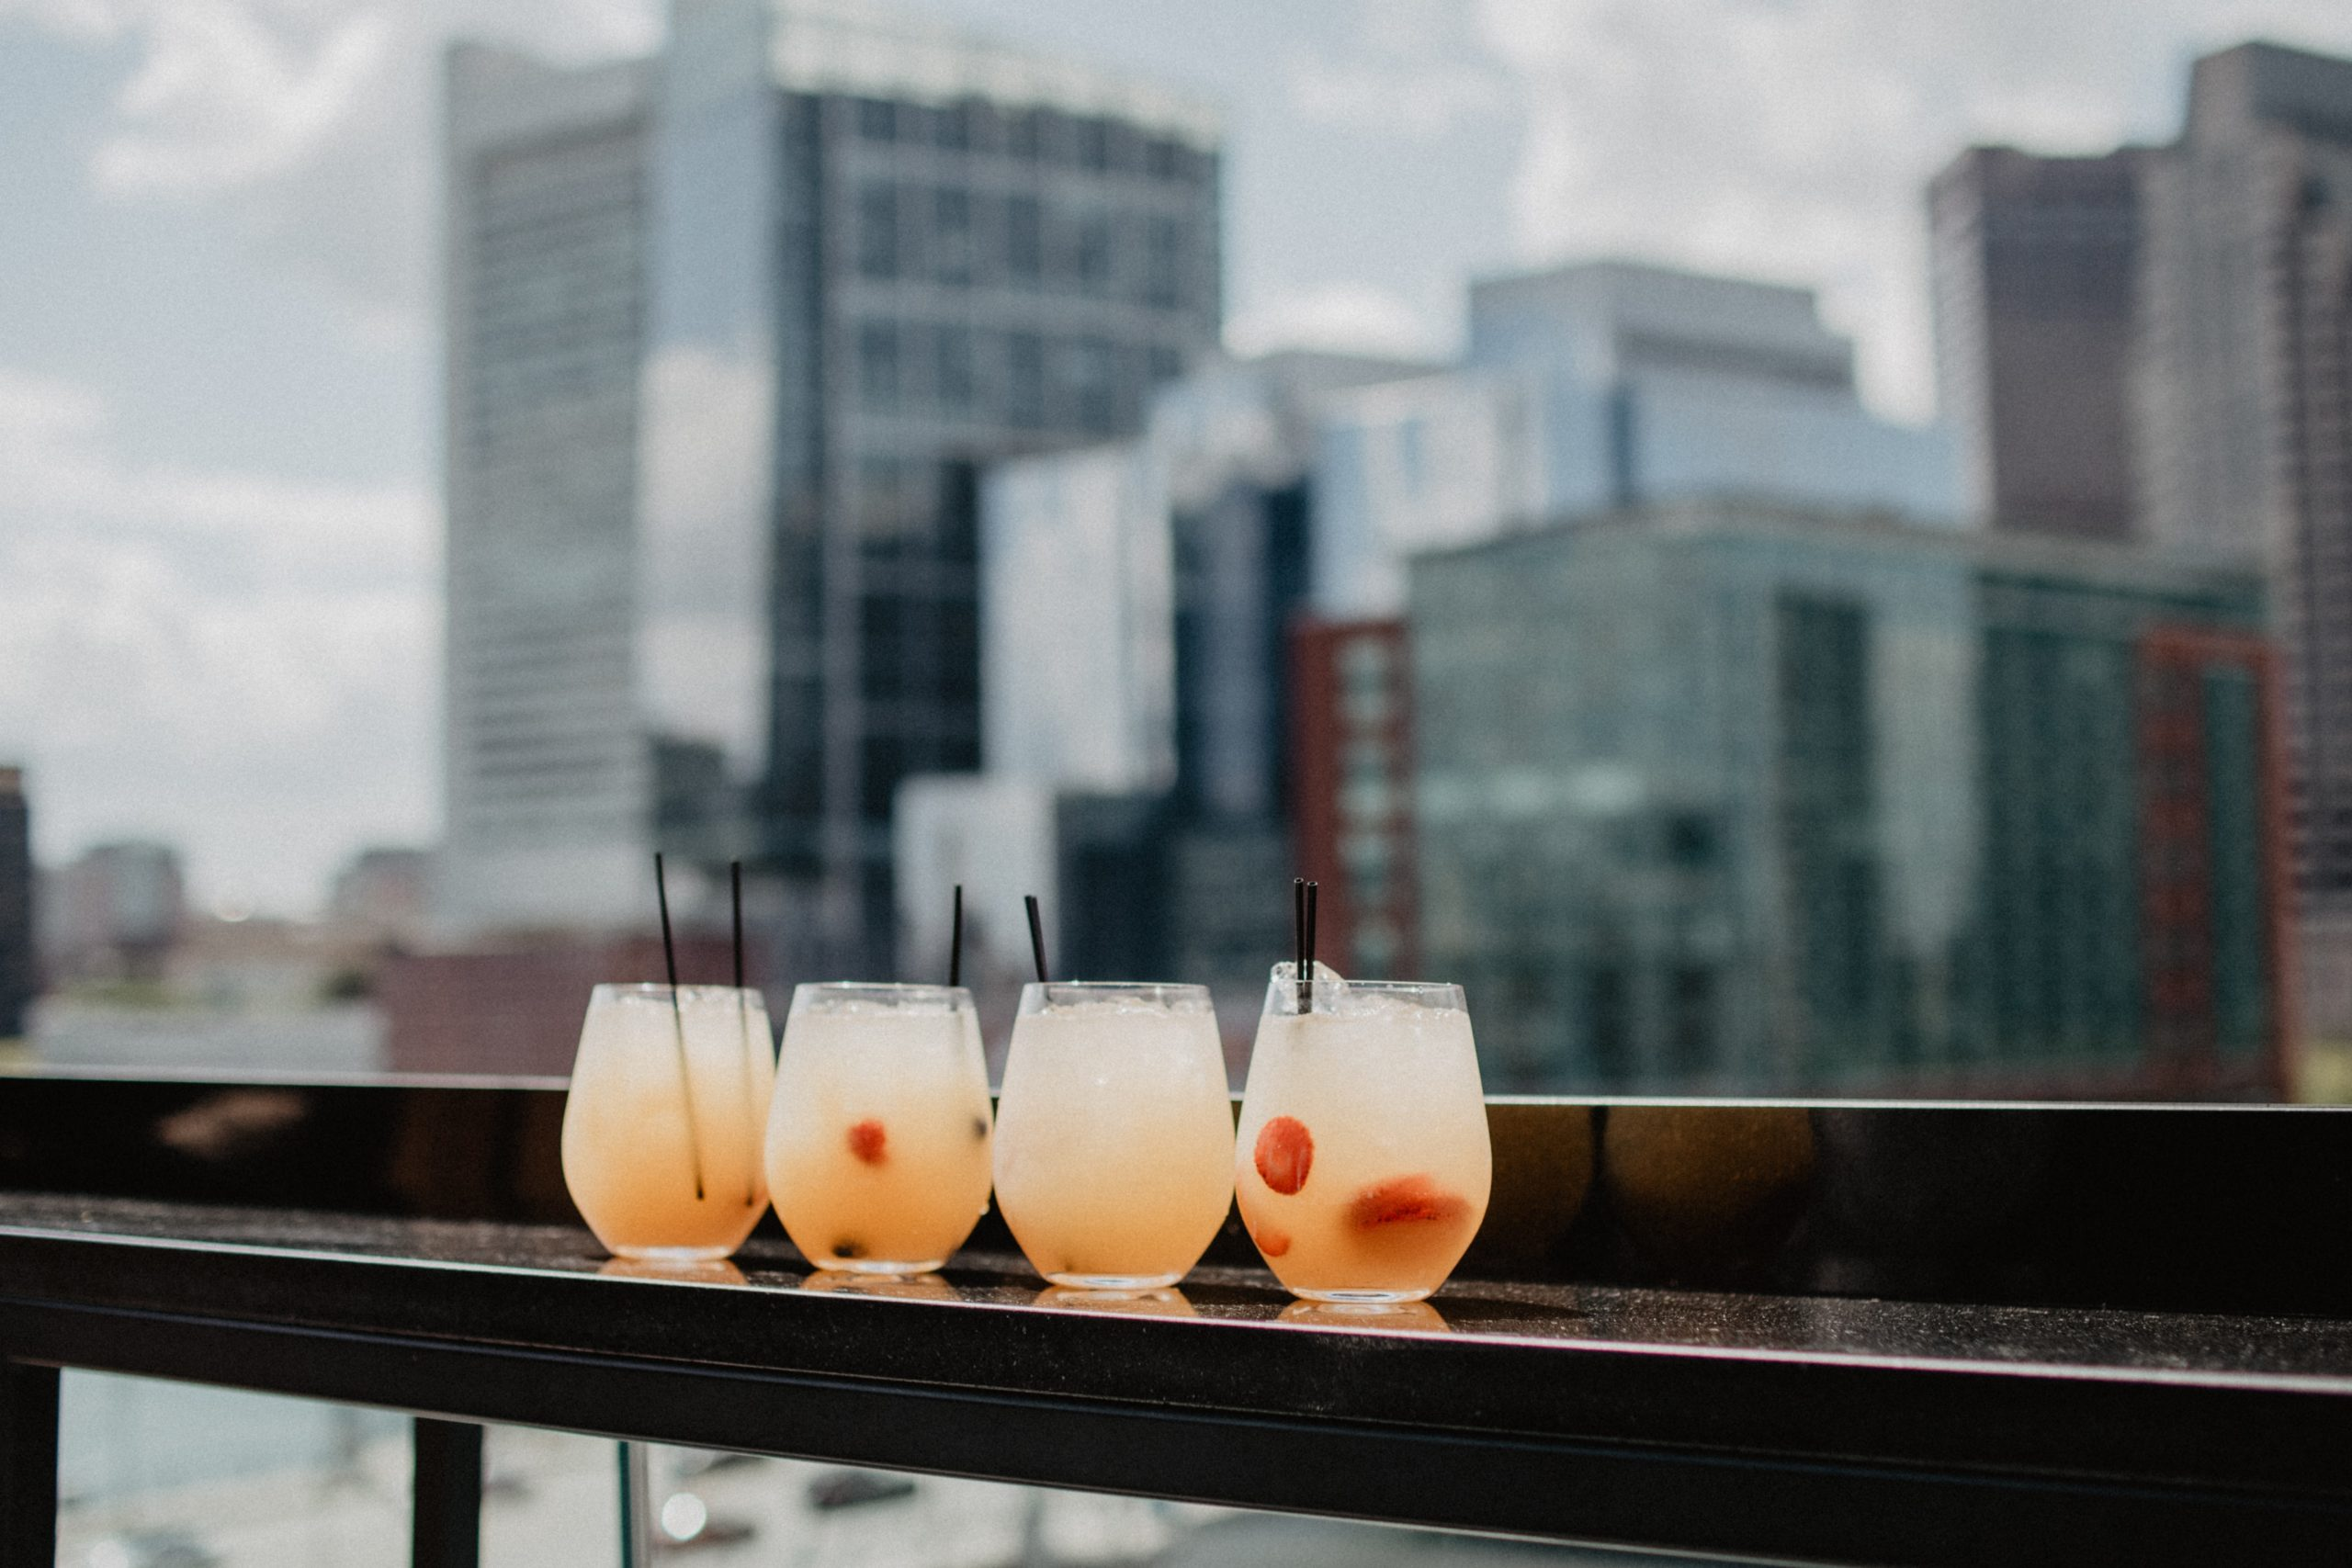 Fresh cocktails are best enjoyed in front of this skyline during a weekend in Boston.